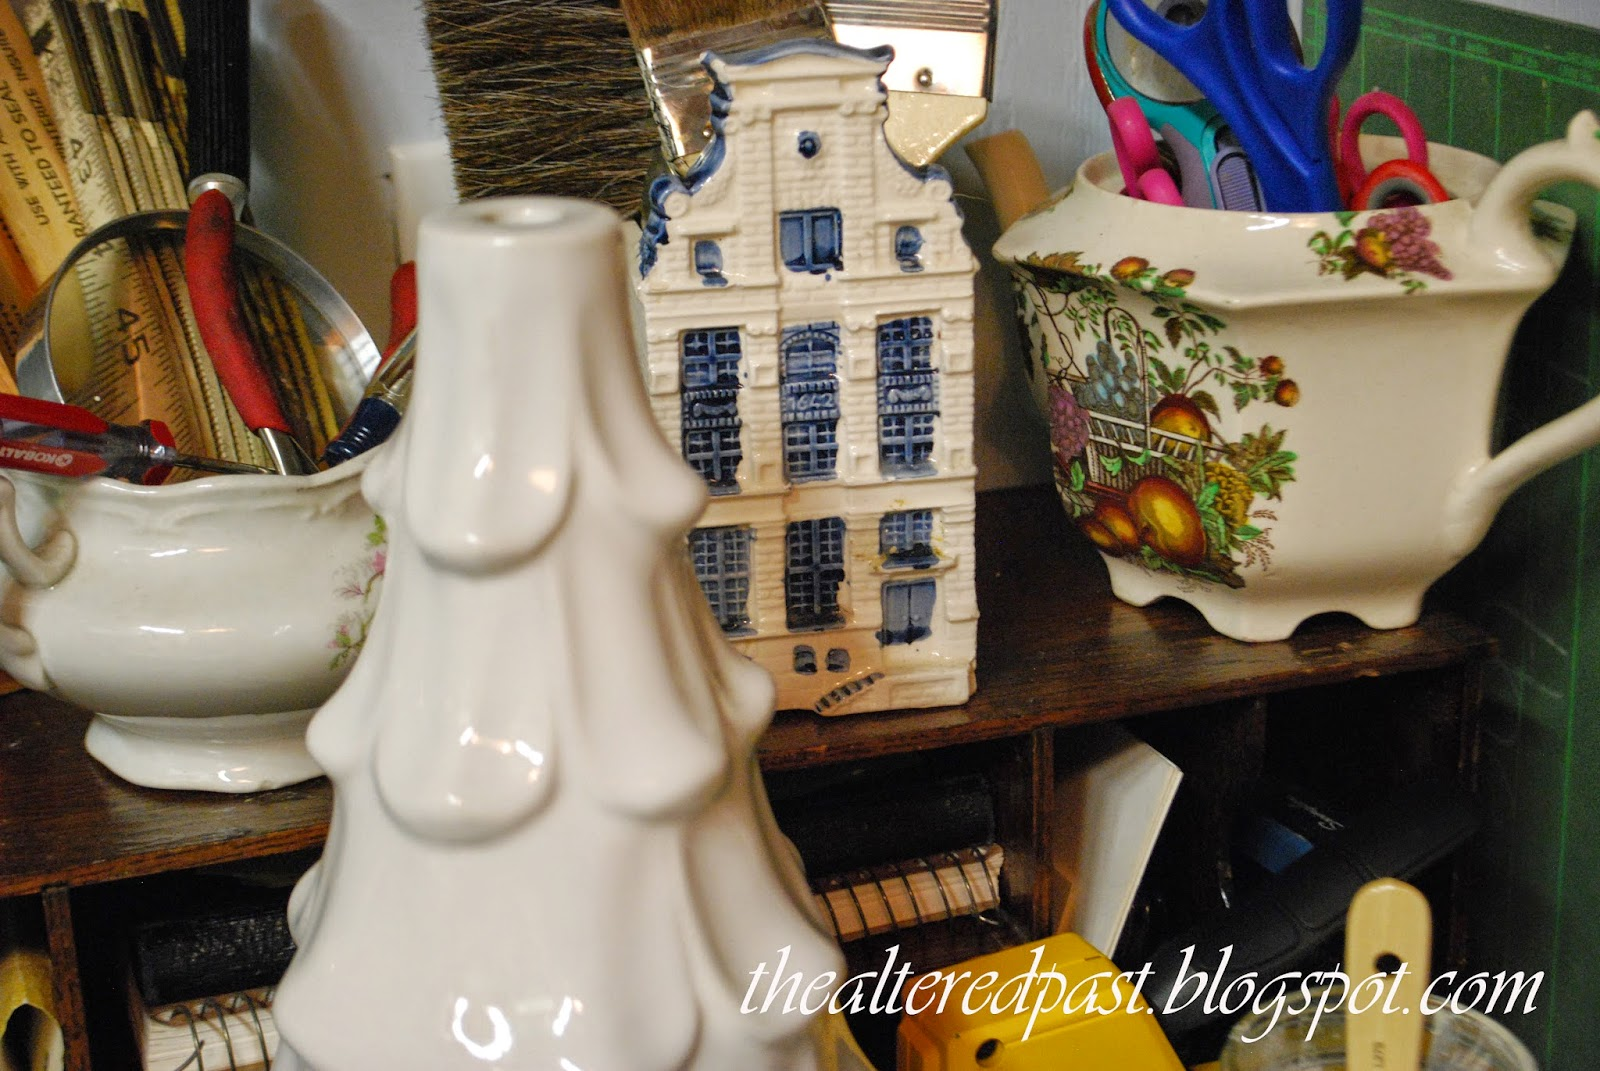 workroom studio,  vintage dishes, the altered past blog